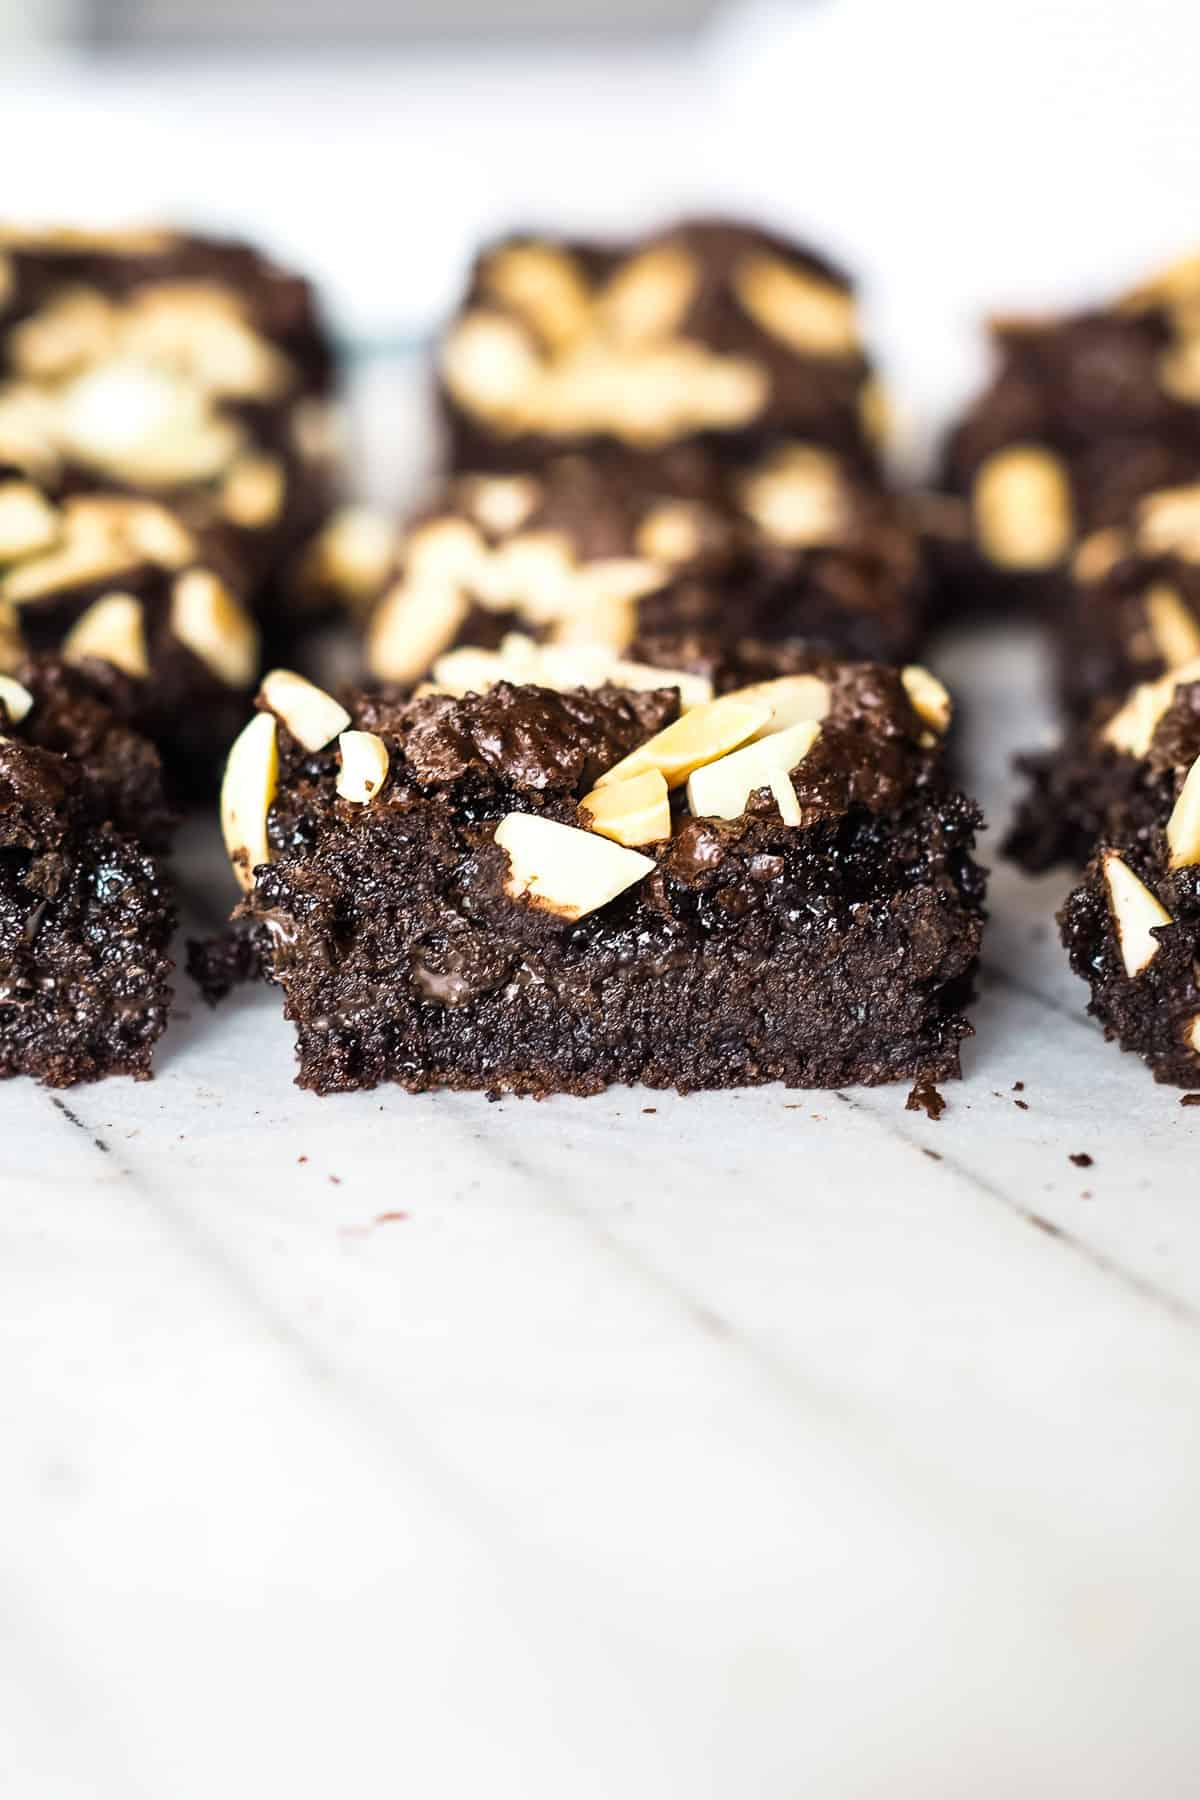 Almond brownies arranged on a row